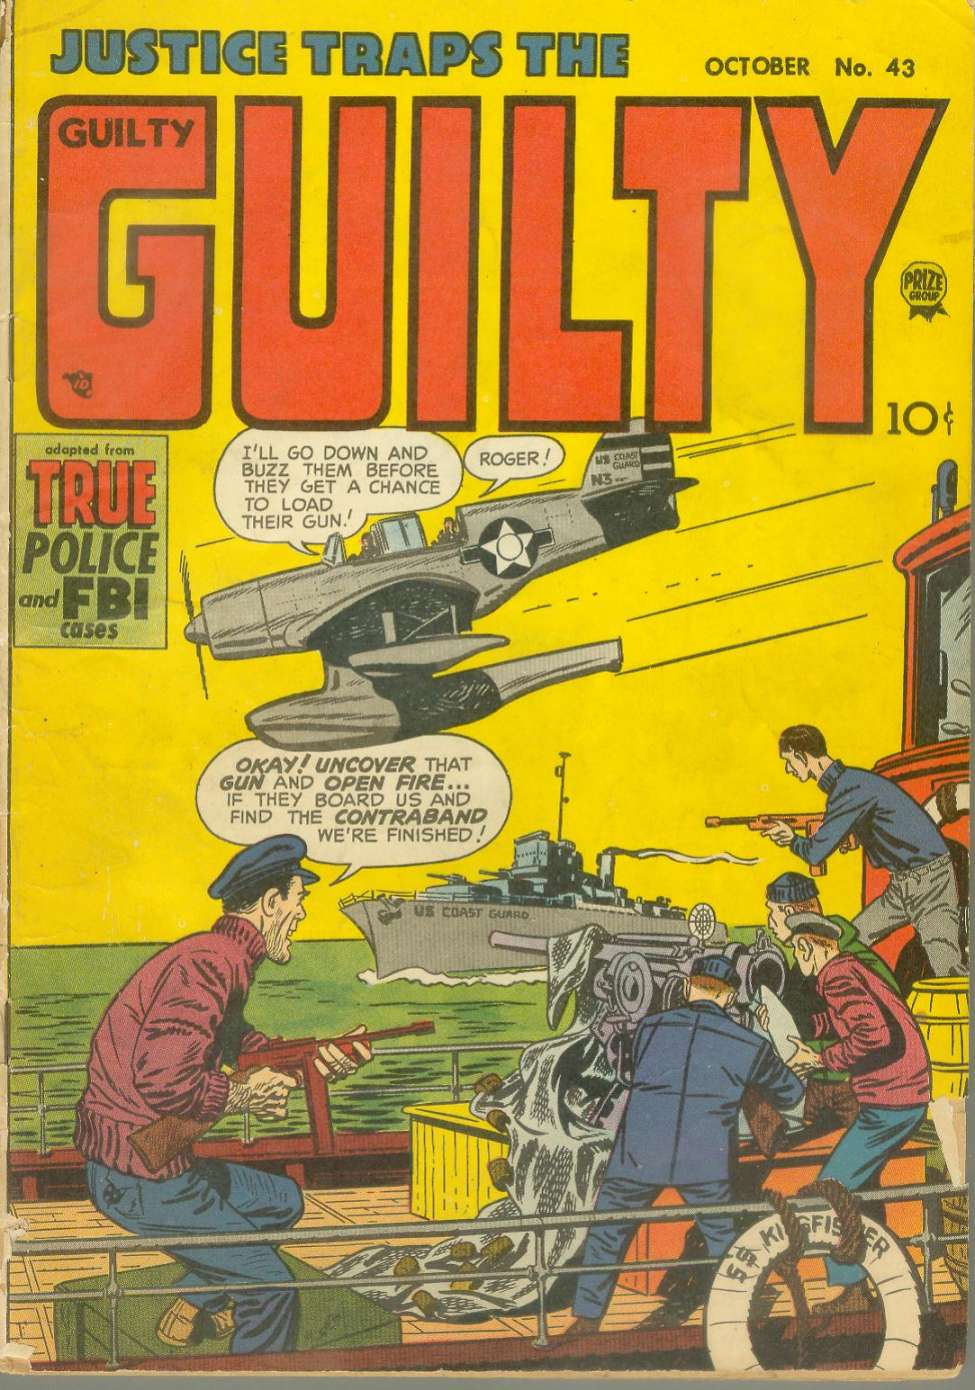 Comic Book Cover For Justice Traps the Guilty v6 1 (43)